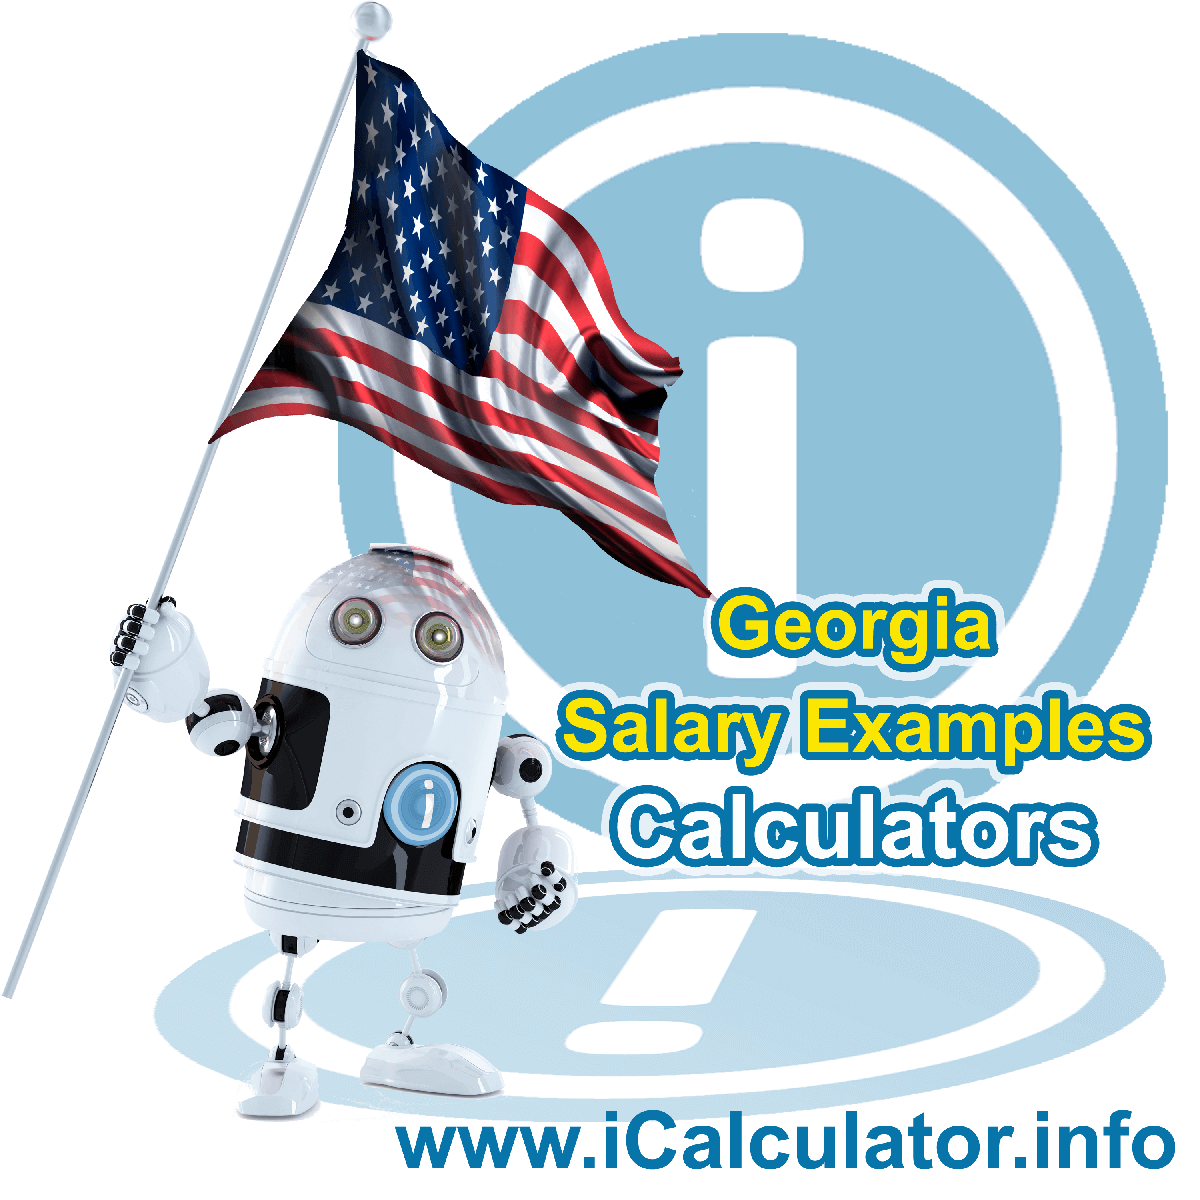 Georgia Salary Example for $60,000.00 in 2020 | iCalculator | $60,000.00 salary example for employee and employer paying Georgia State tincome taxes. Detailed salary after tax calculation including Georgia State Tax, Federal State Tax, Medicare Deductions, Social Security, Capital Gains and other income tax and salary deductions complete with supporting Georgia state tax tables